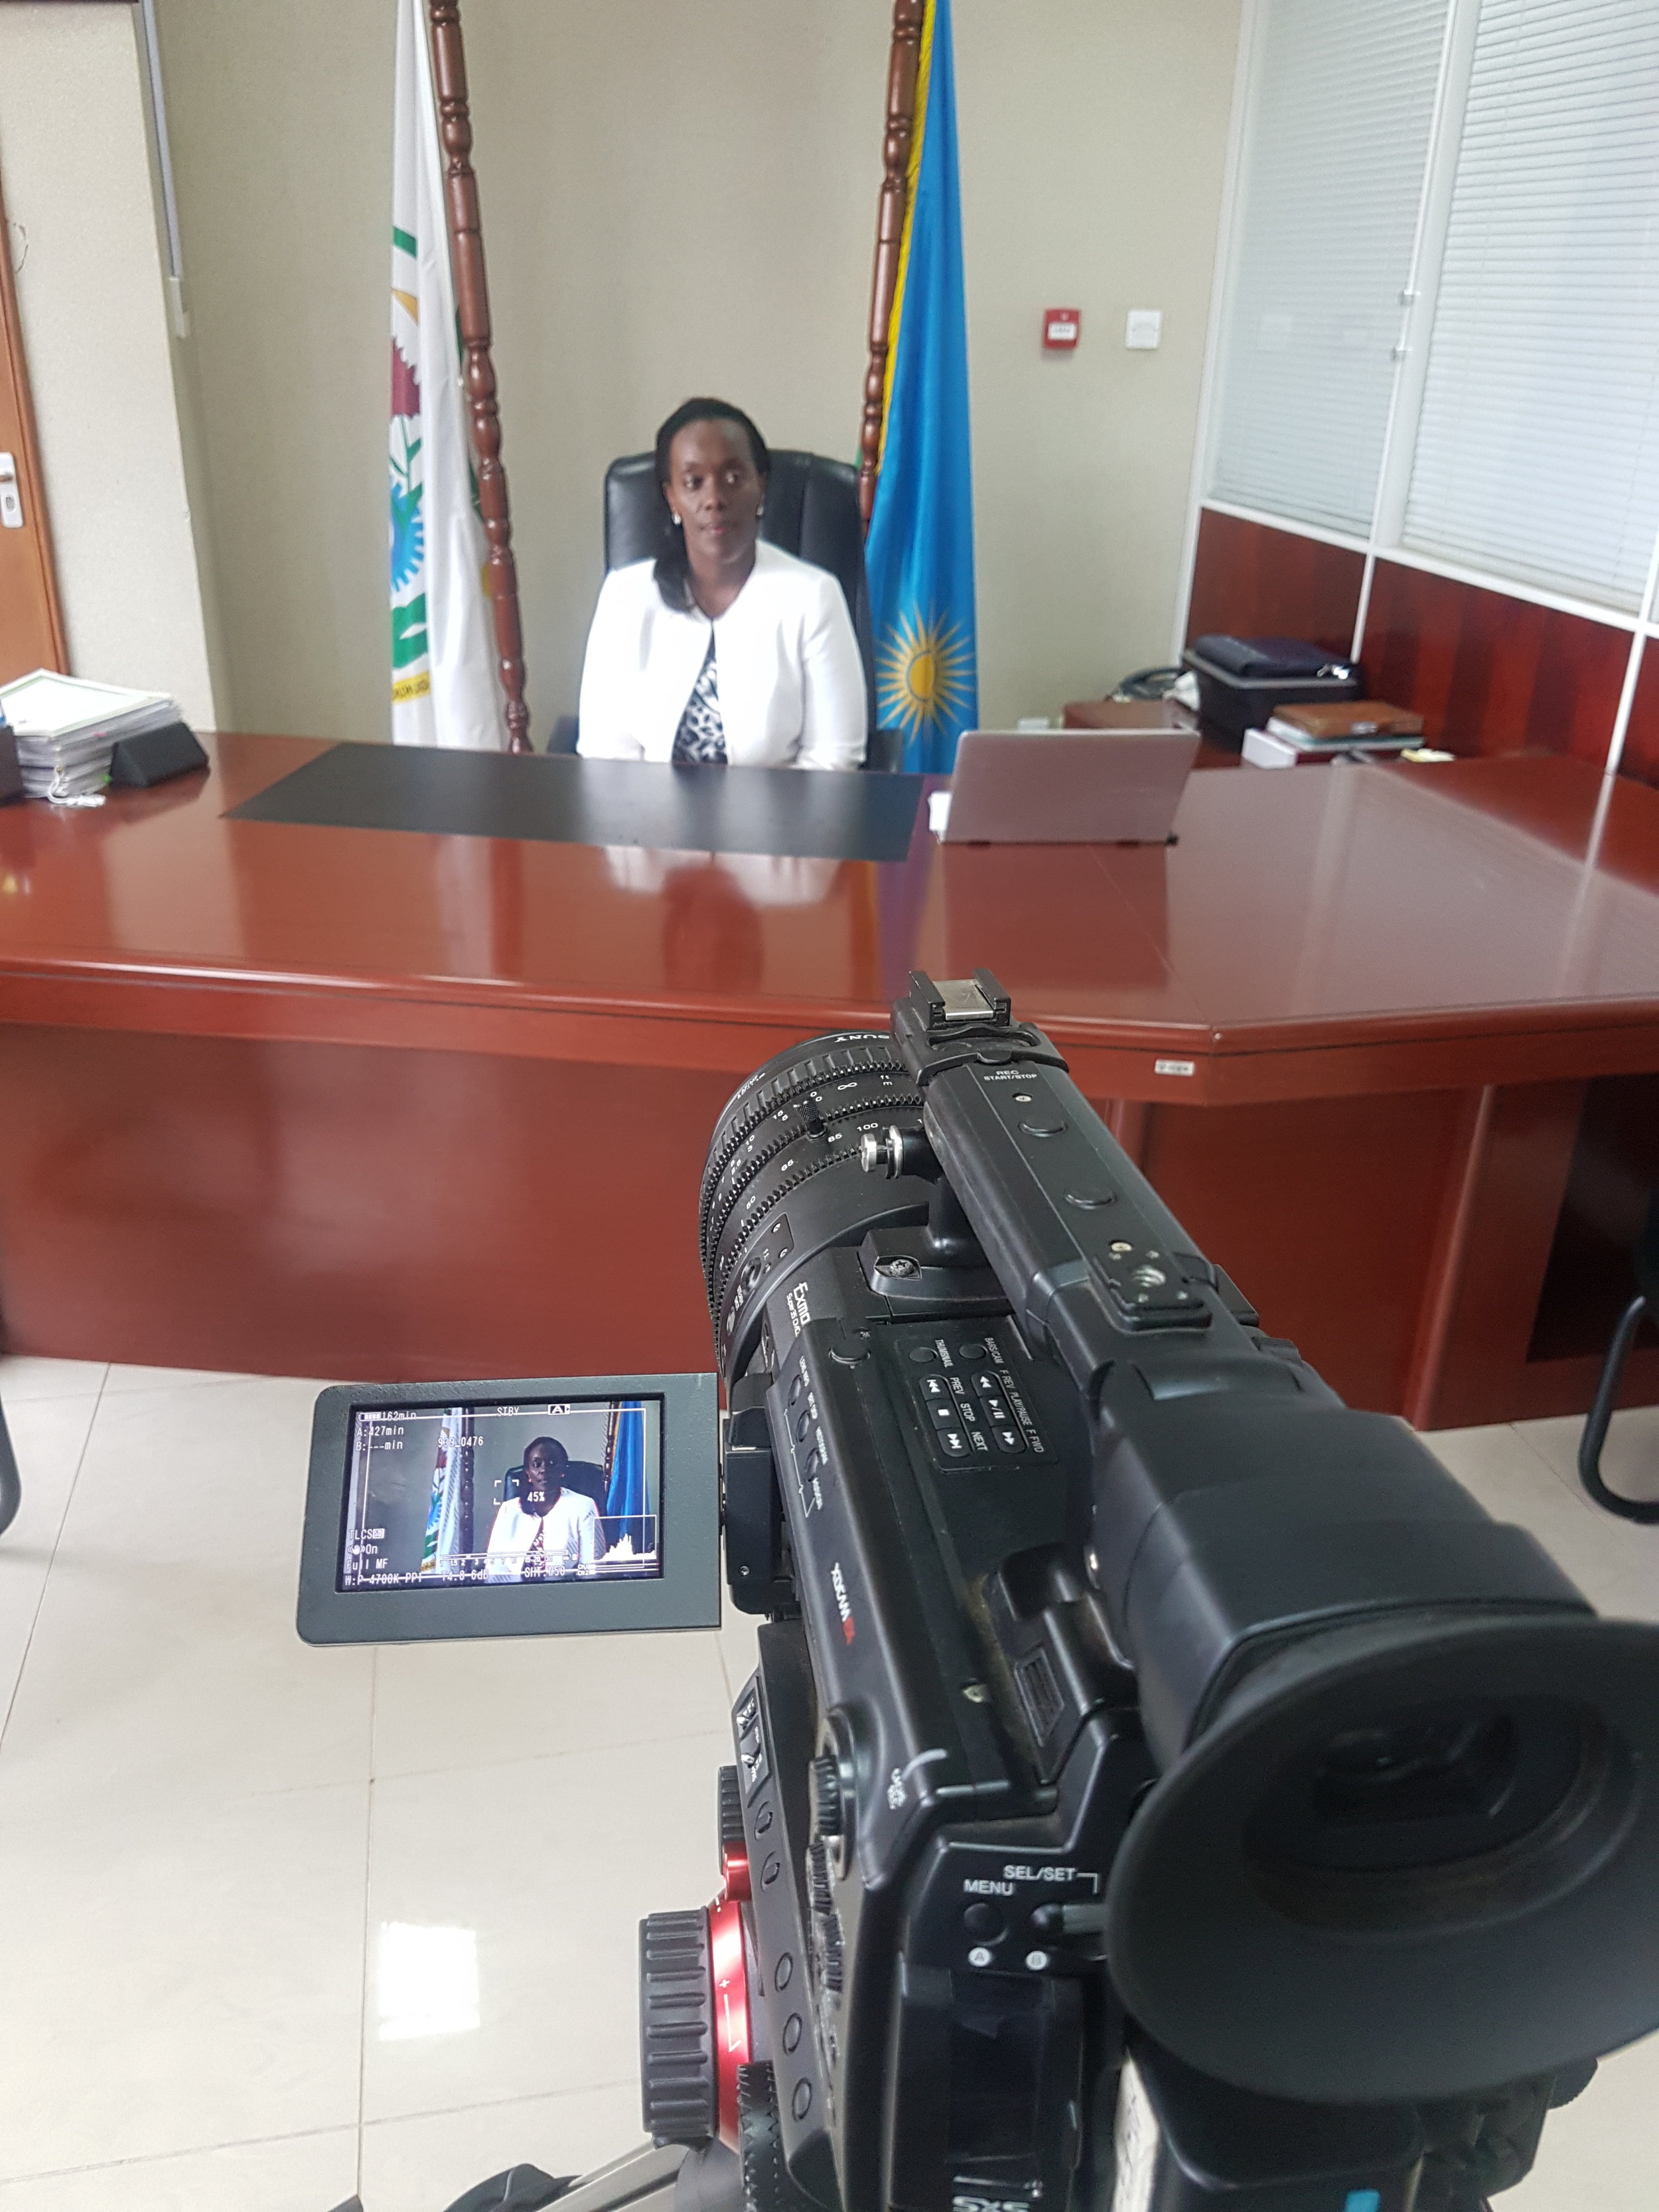 The Sony PMWF3 with zoom lens capturing the interview with the Minister Of Health, Dr. Diane GASHUMBA.